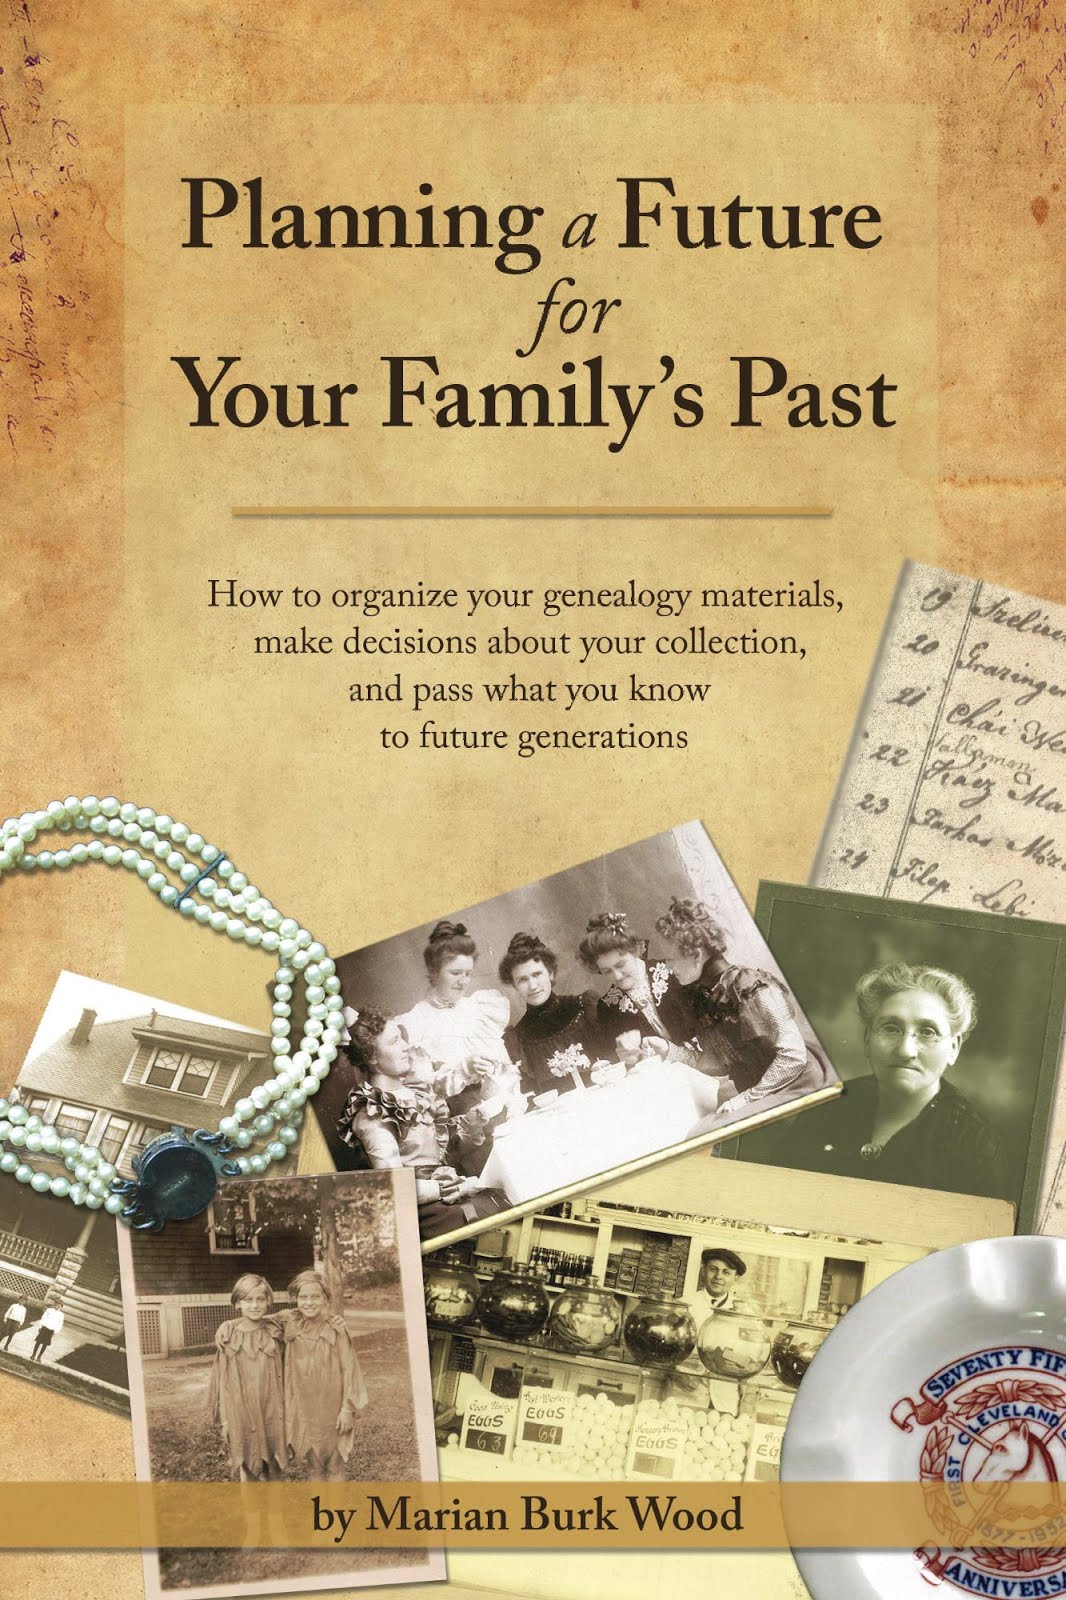 My NEW genealogy book